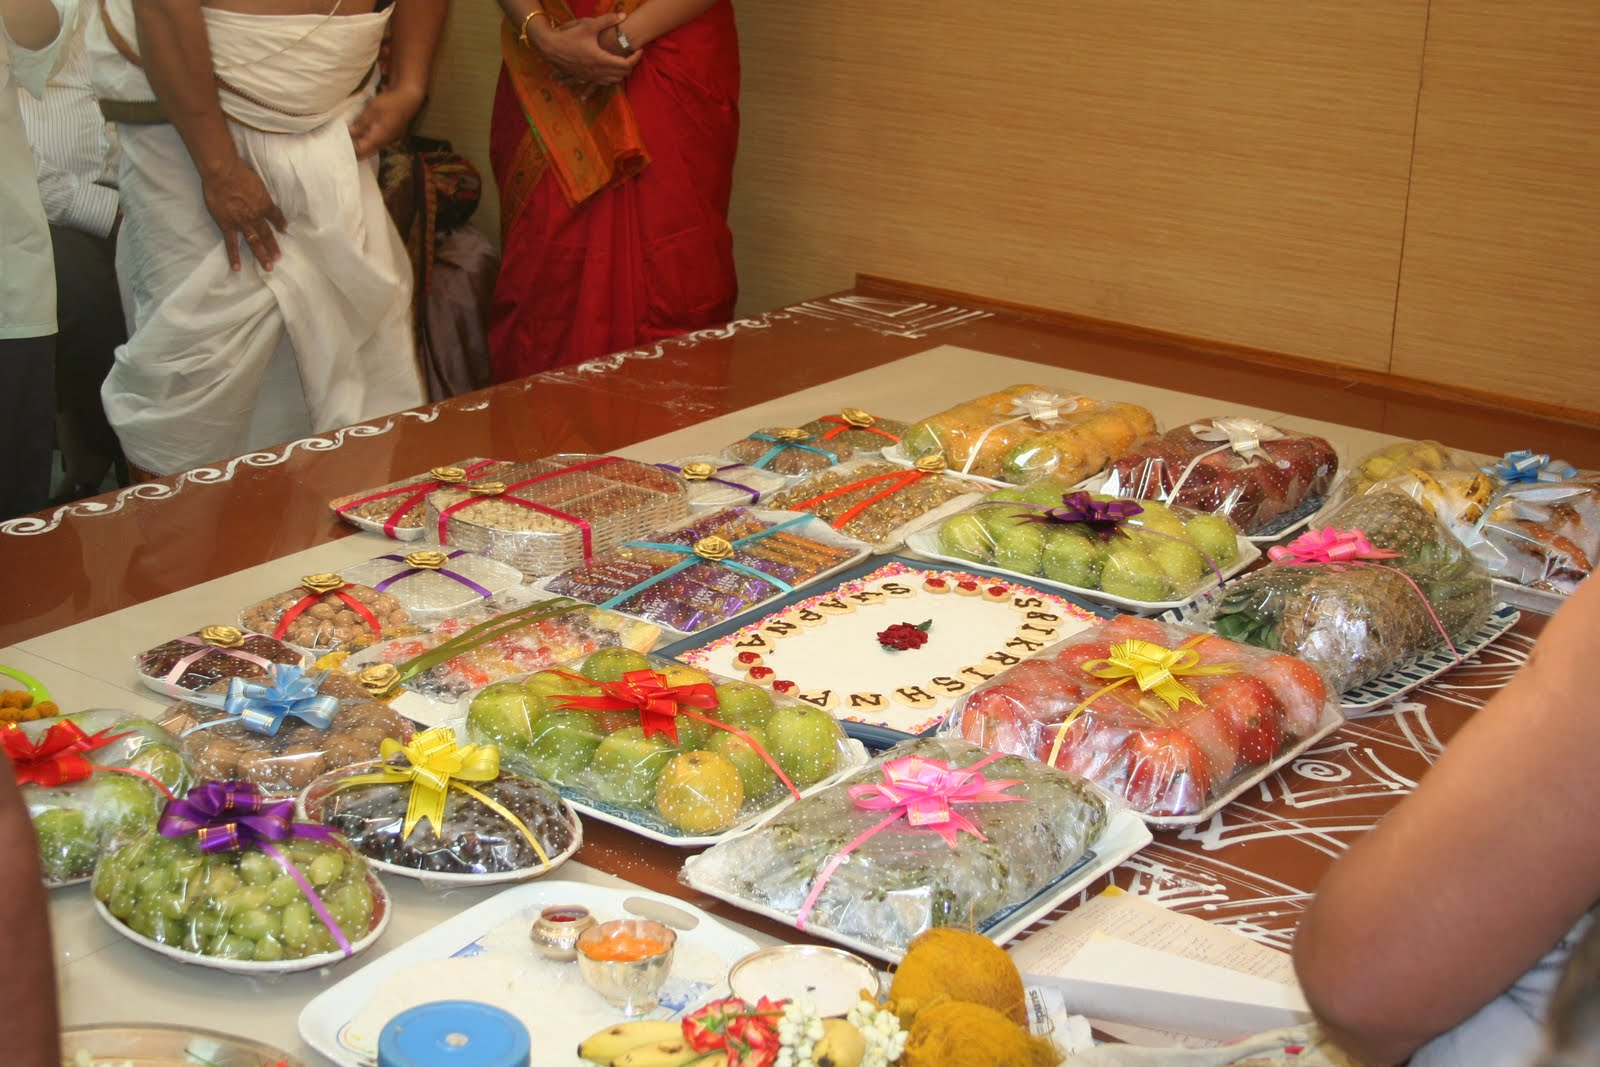 Annaprashana  Engagement  Nichayathartham Seer decoration   Home     Annaprashana  Engagement  Nichayathartham Seer decoration 25 Adorable Ideas  to Decorate Your Home for Your Engagement Party  Are you thinking of  hosting